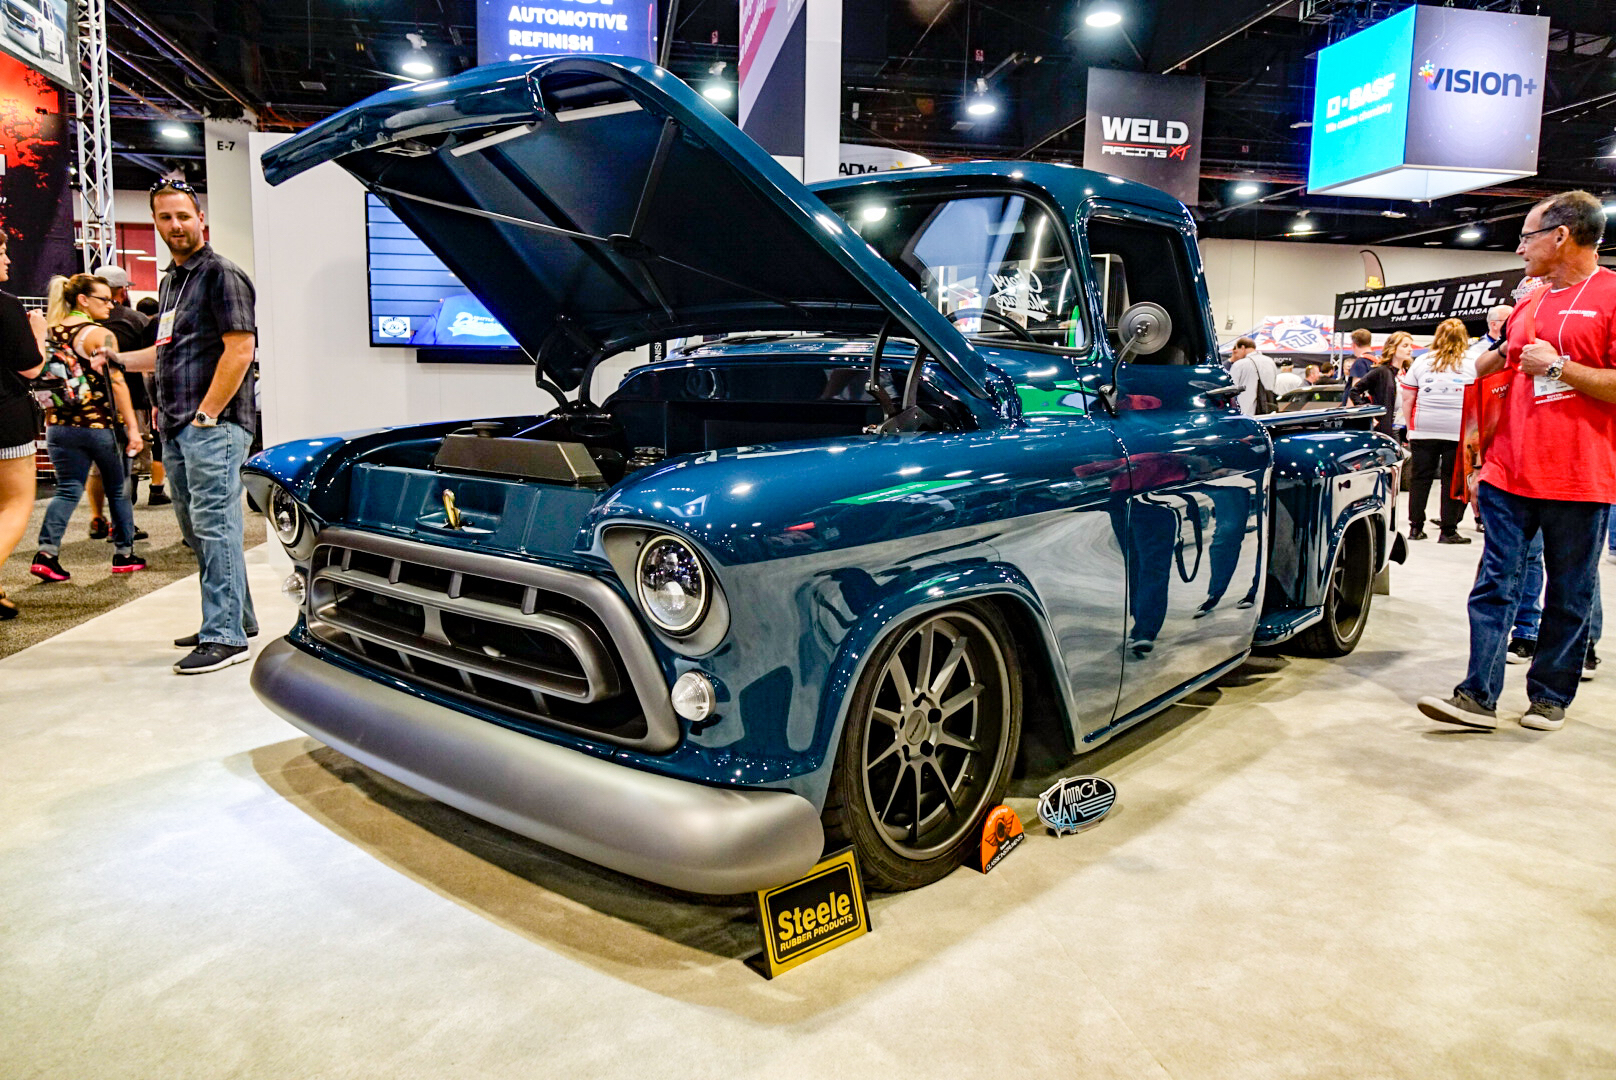 1957 Chevy pickup Bogi Garage